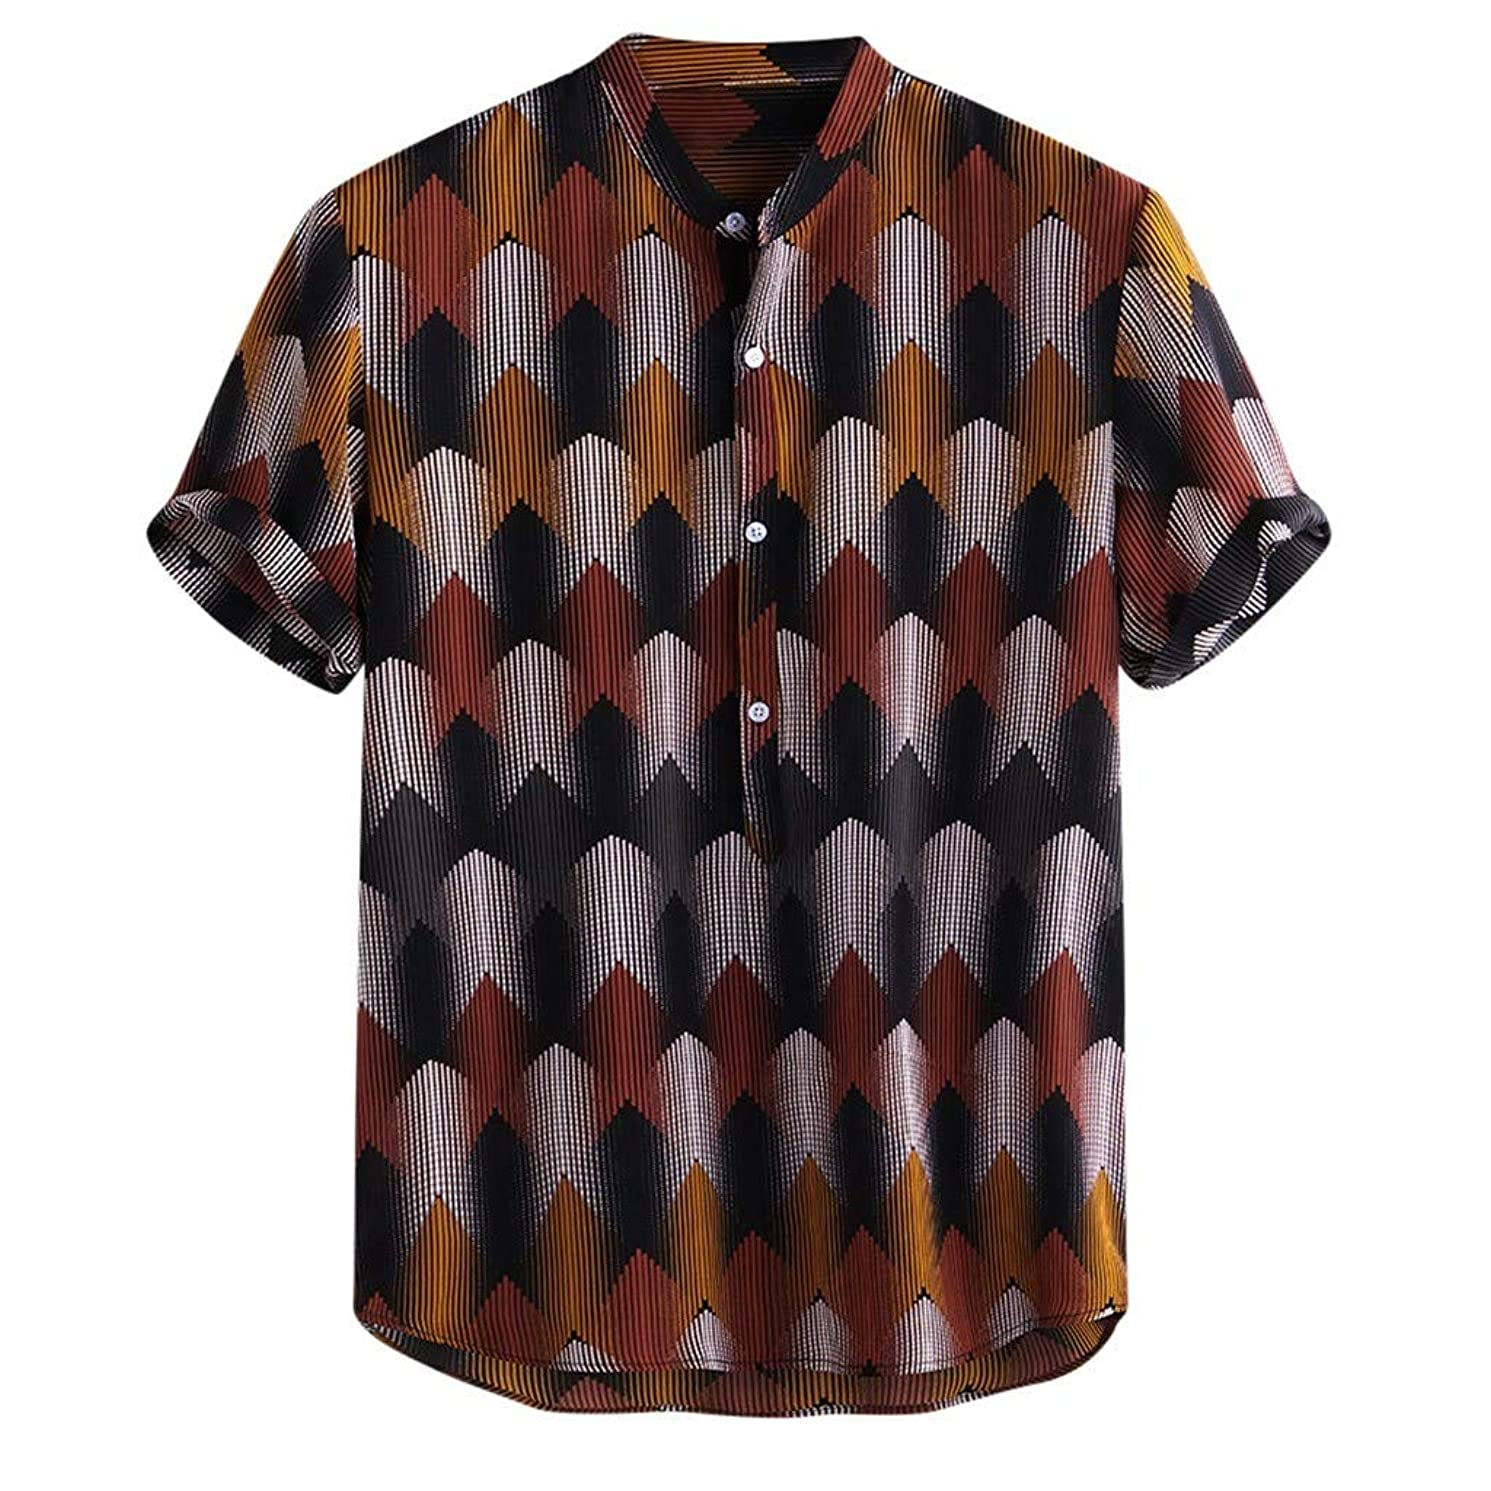 Henley Shirts for Mens, Beautyfine Funny Ethnic Printed Stand Collar Short Sleeve Loose Tops